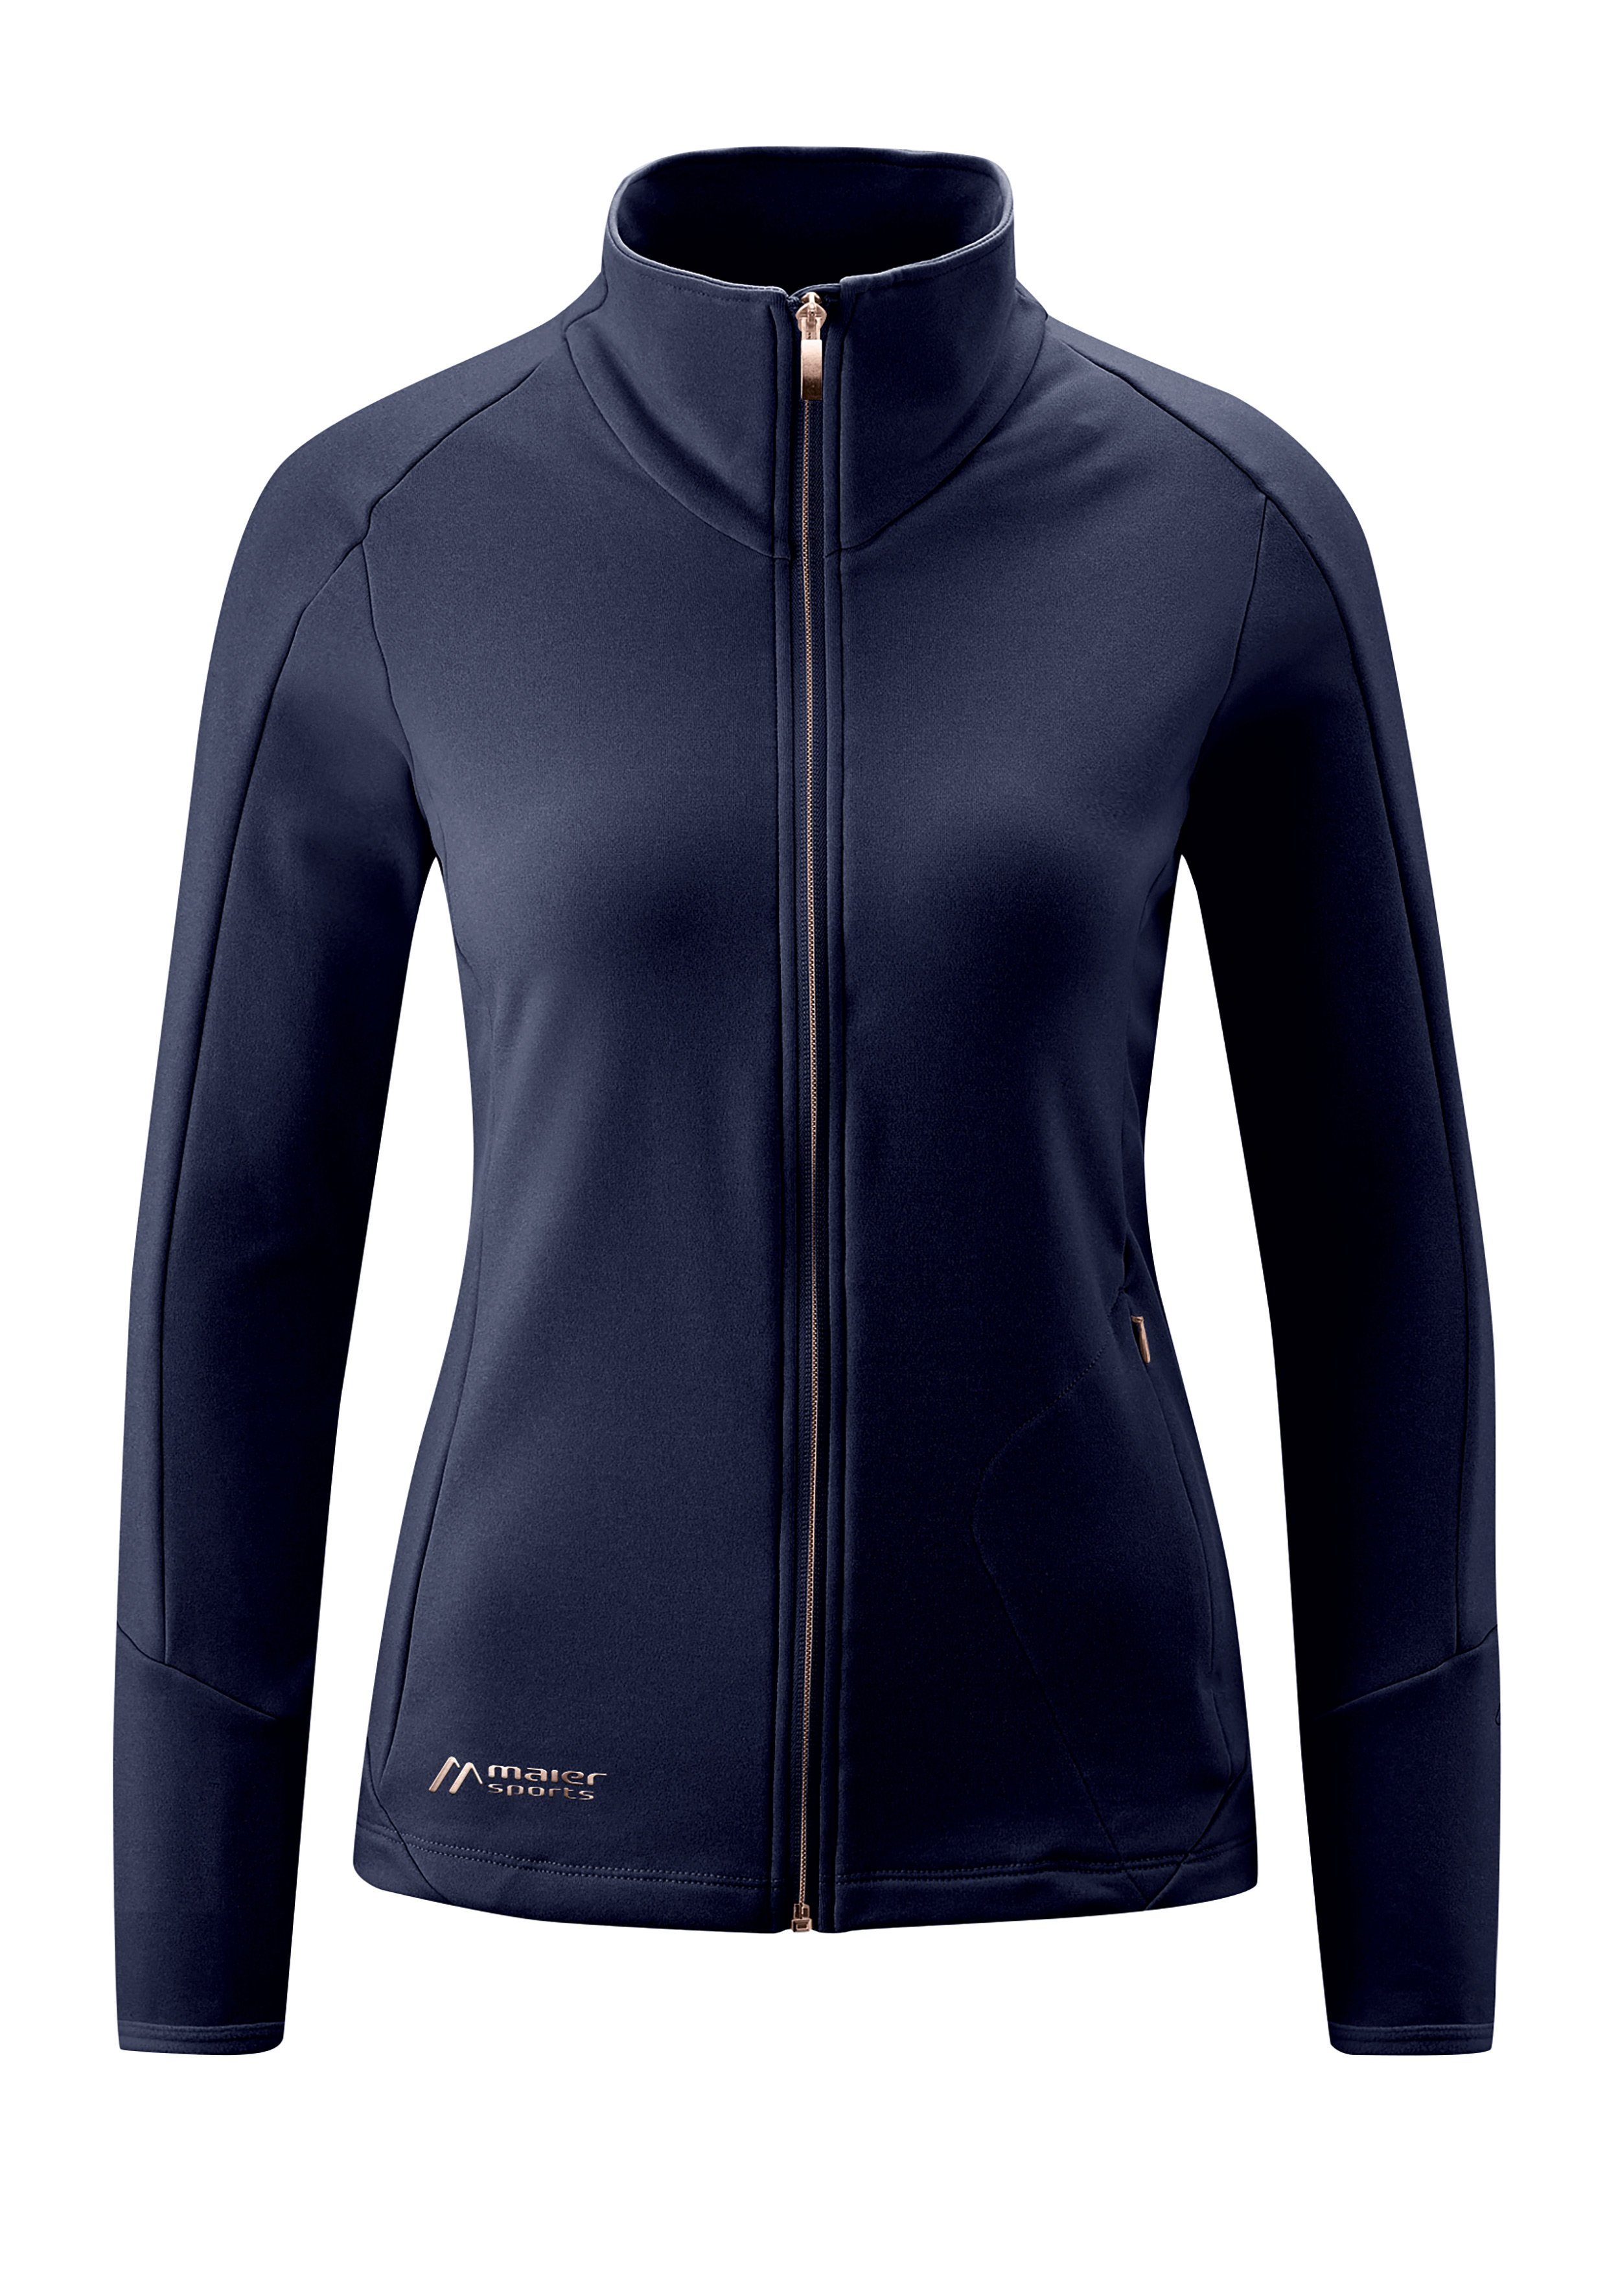 Maier Sports Fleecejacke Cicerbita | Sportbekleidung > Sportjacken > Fleecejacken | maier sports